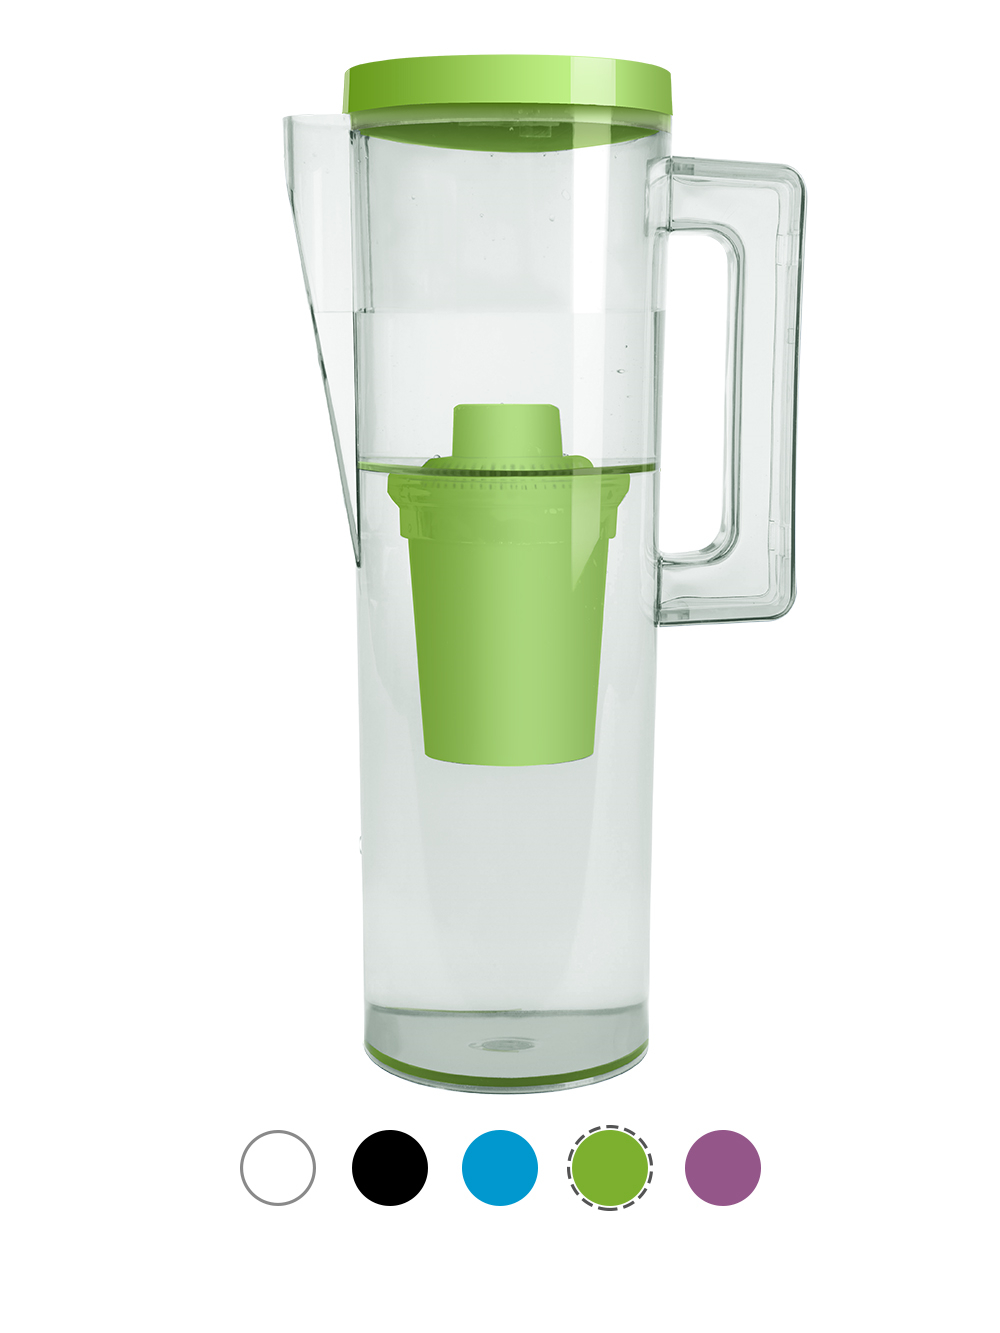 aok-106-water-filter-jug-3.jpg